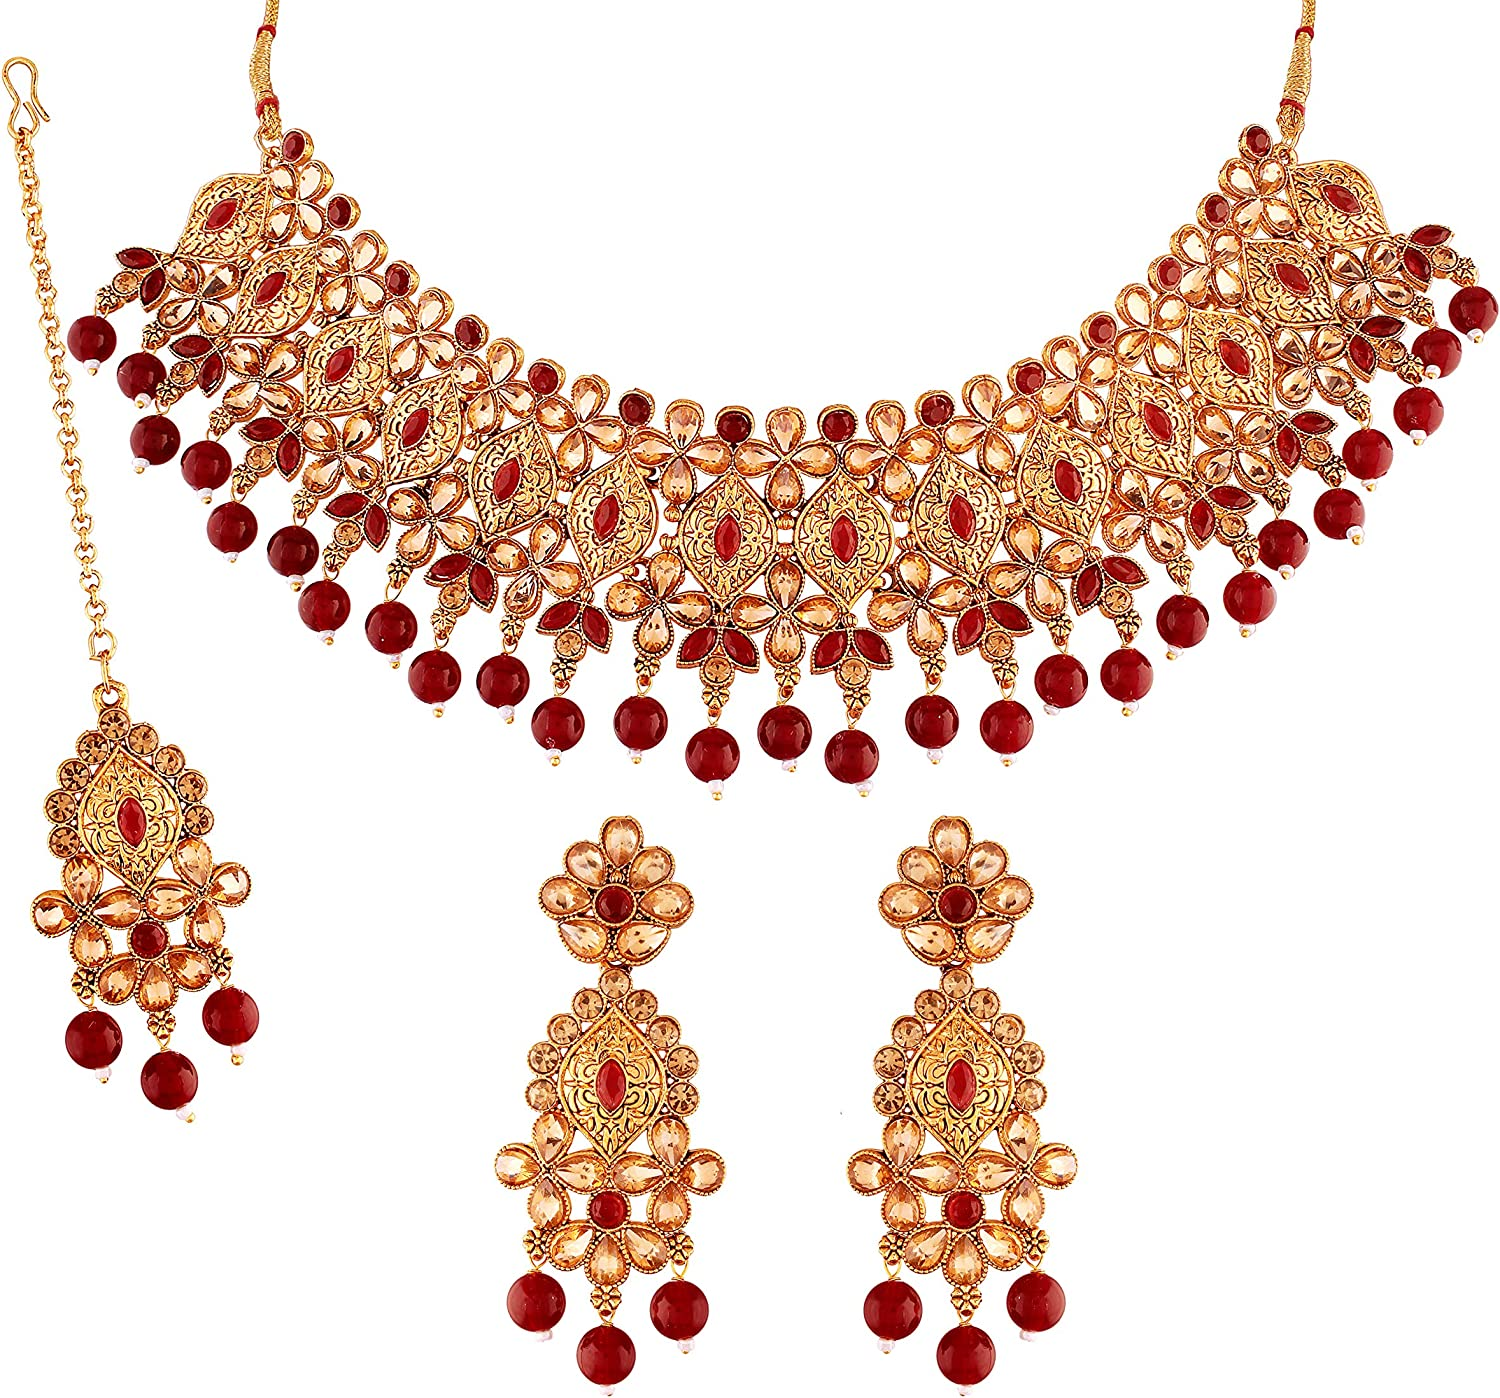 I Jewels Indian Bollywood Gold Plated Stone Studded & Faux Pearl Ethnic Wedding Choker Necklace Jewelry Set with Earrings & Maang Tikka for Women (M4154M)